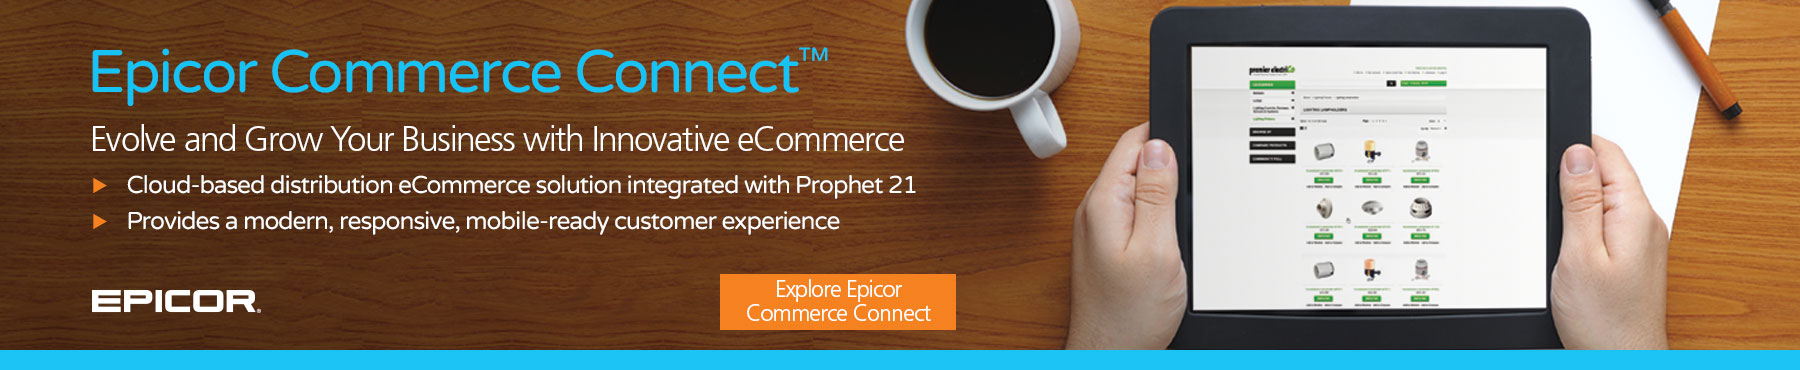 Epicor cCommerce